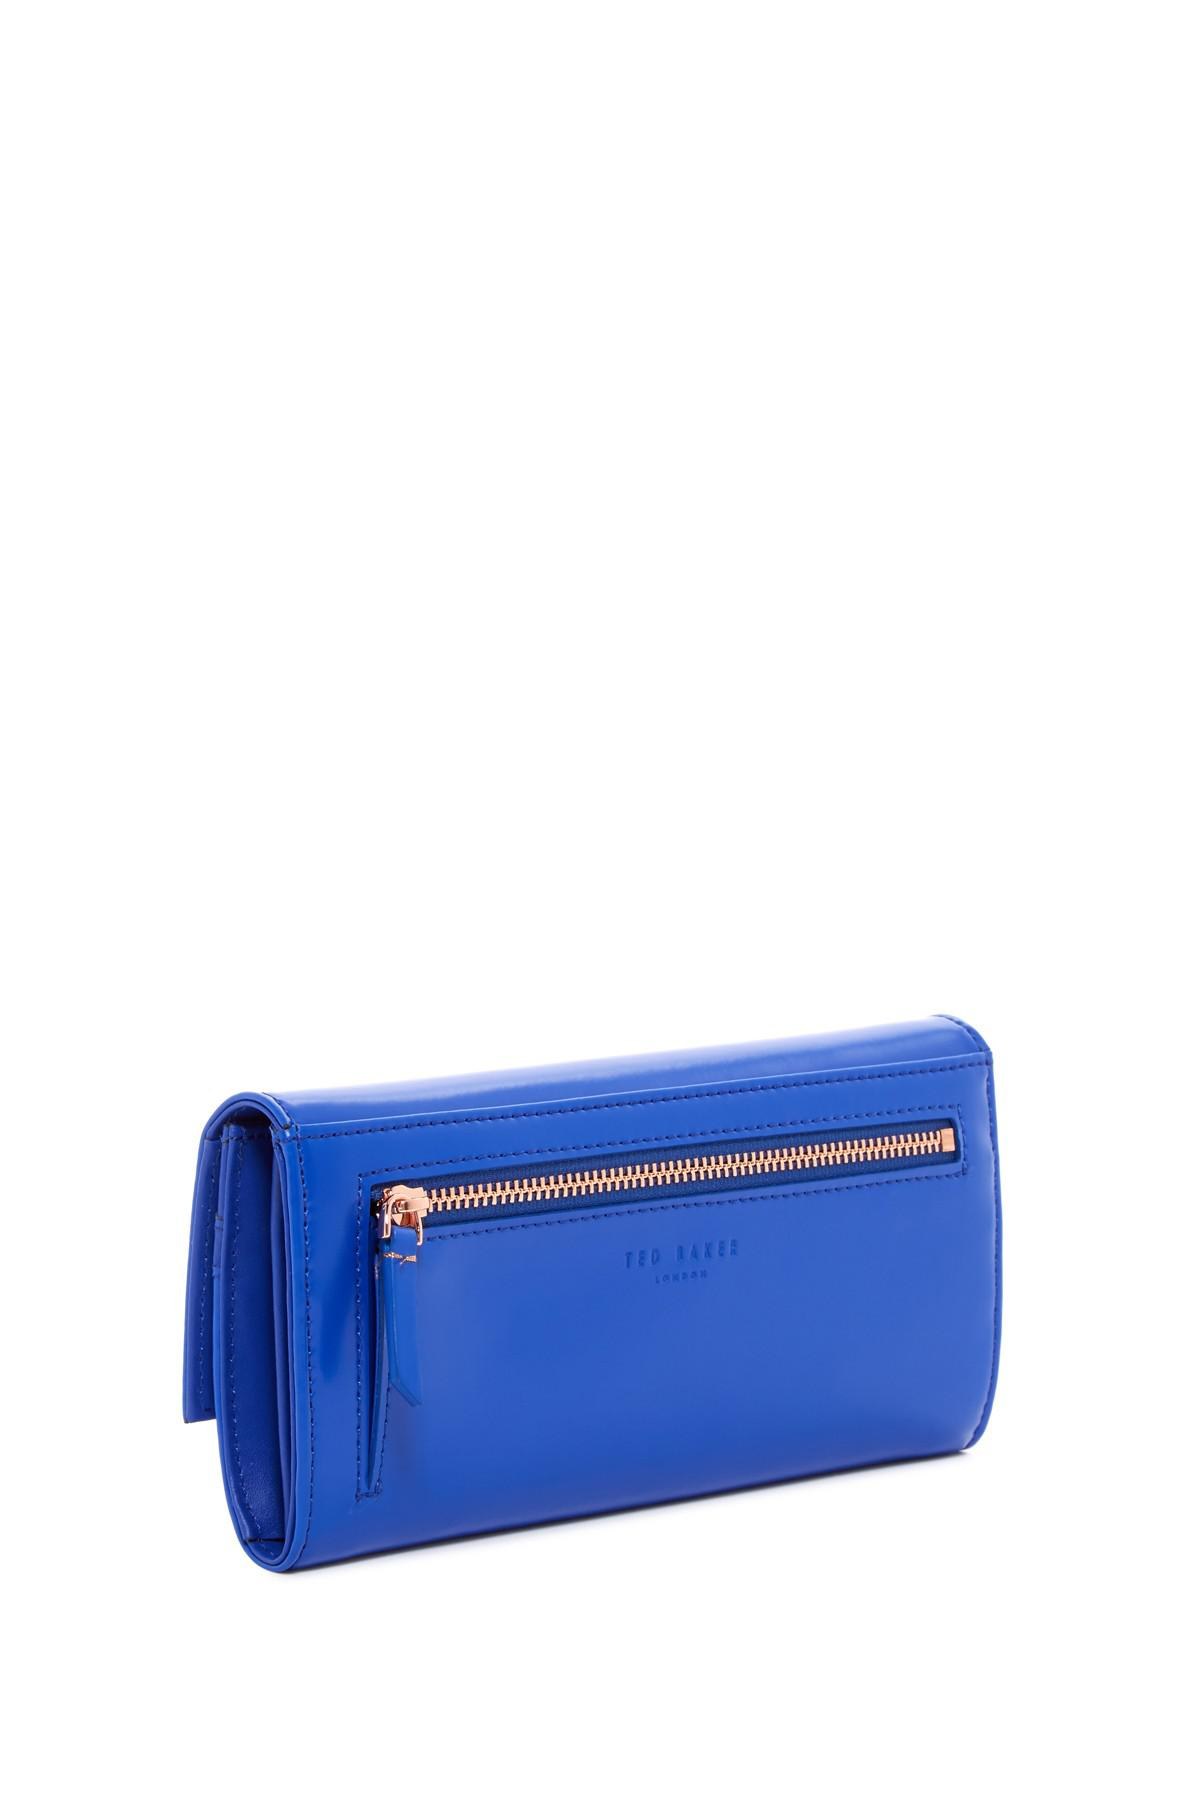 3c86690bb8c6e Lyst - Ted Baker Eleni Crystal Bobble Lock Leather Matinee Wallet in ...